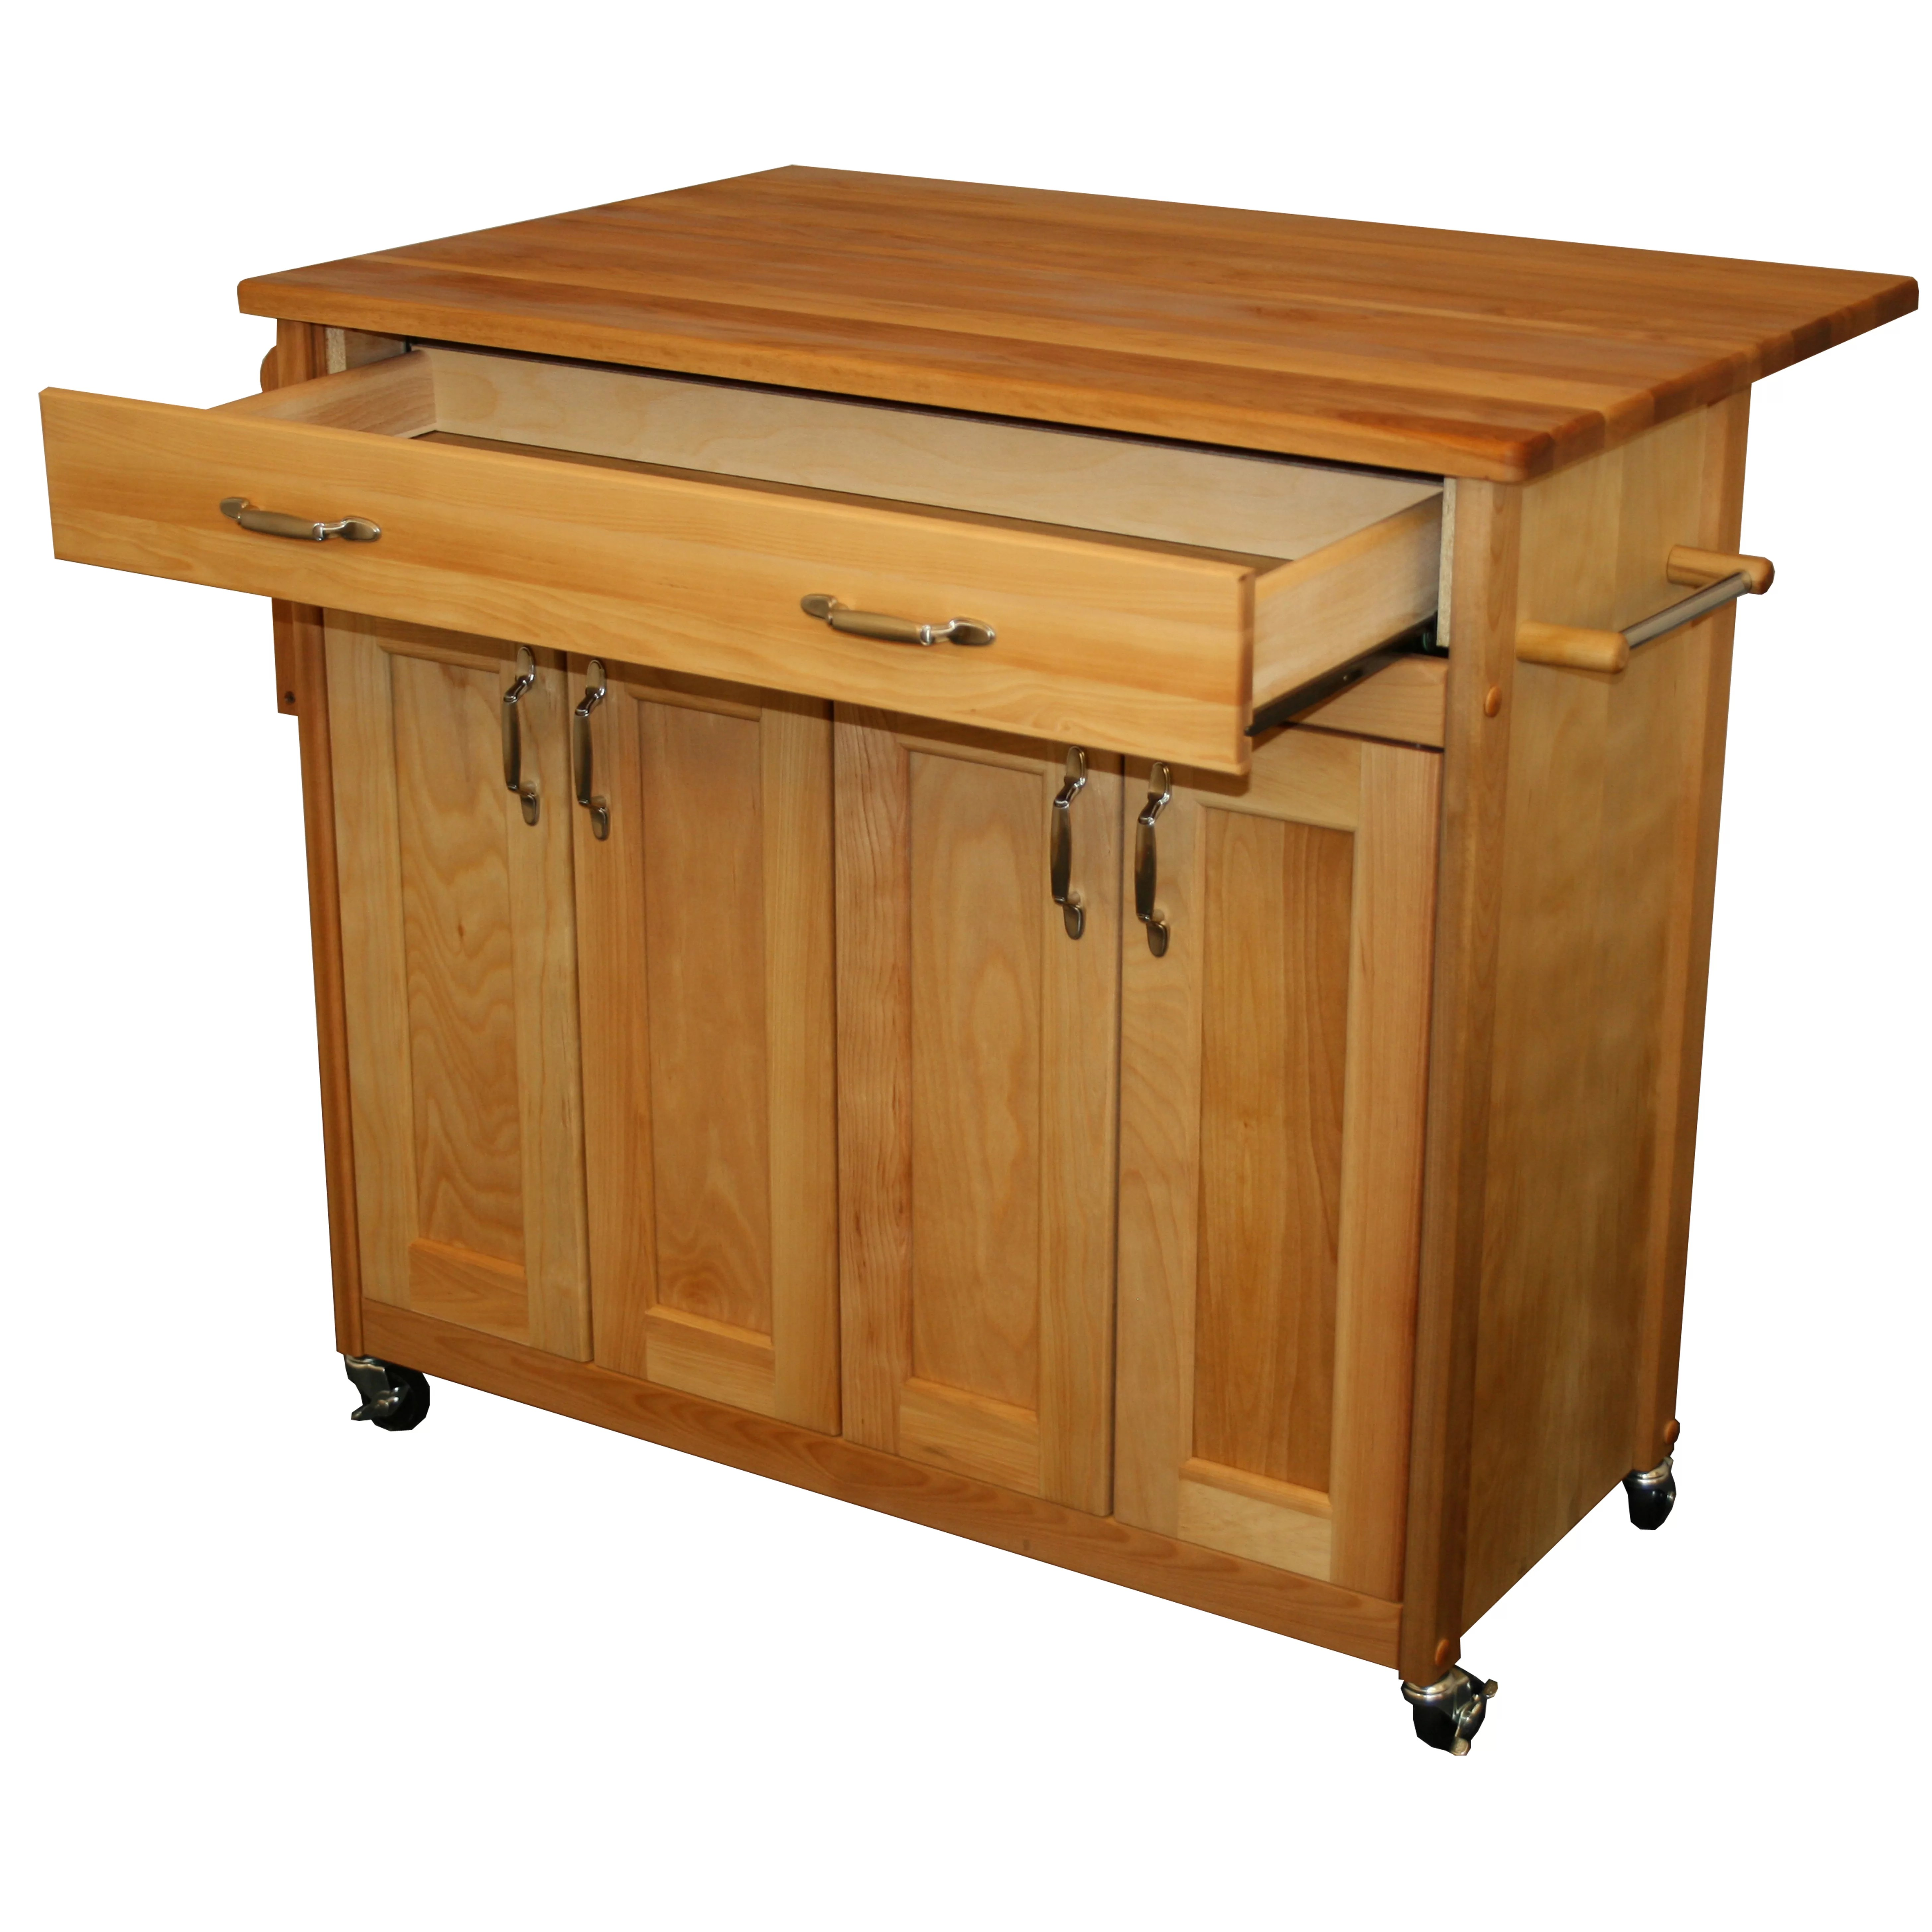 catskill craftsmen kitchen island roll up cabinet doors mid size with wood top